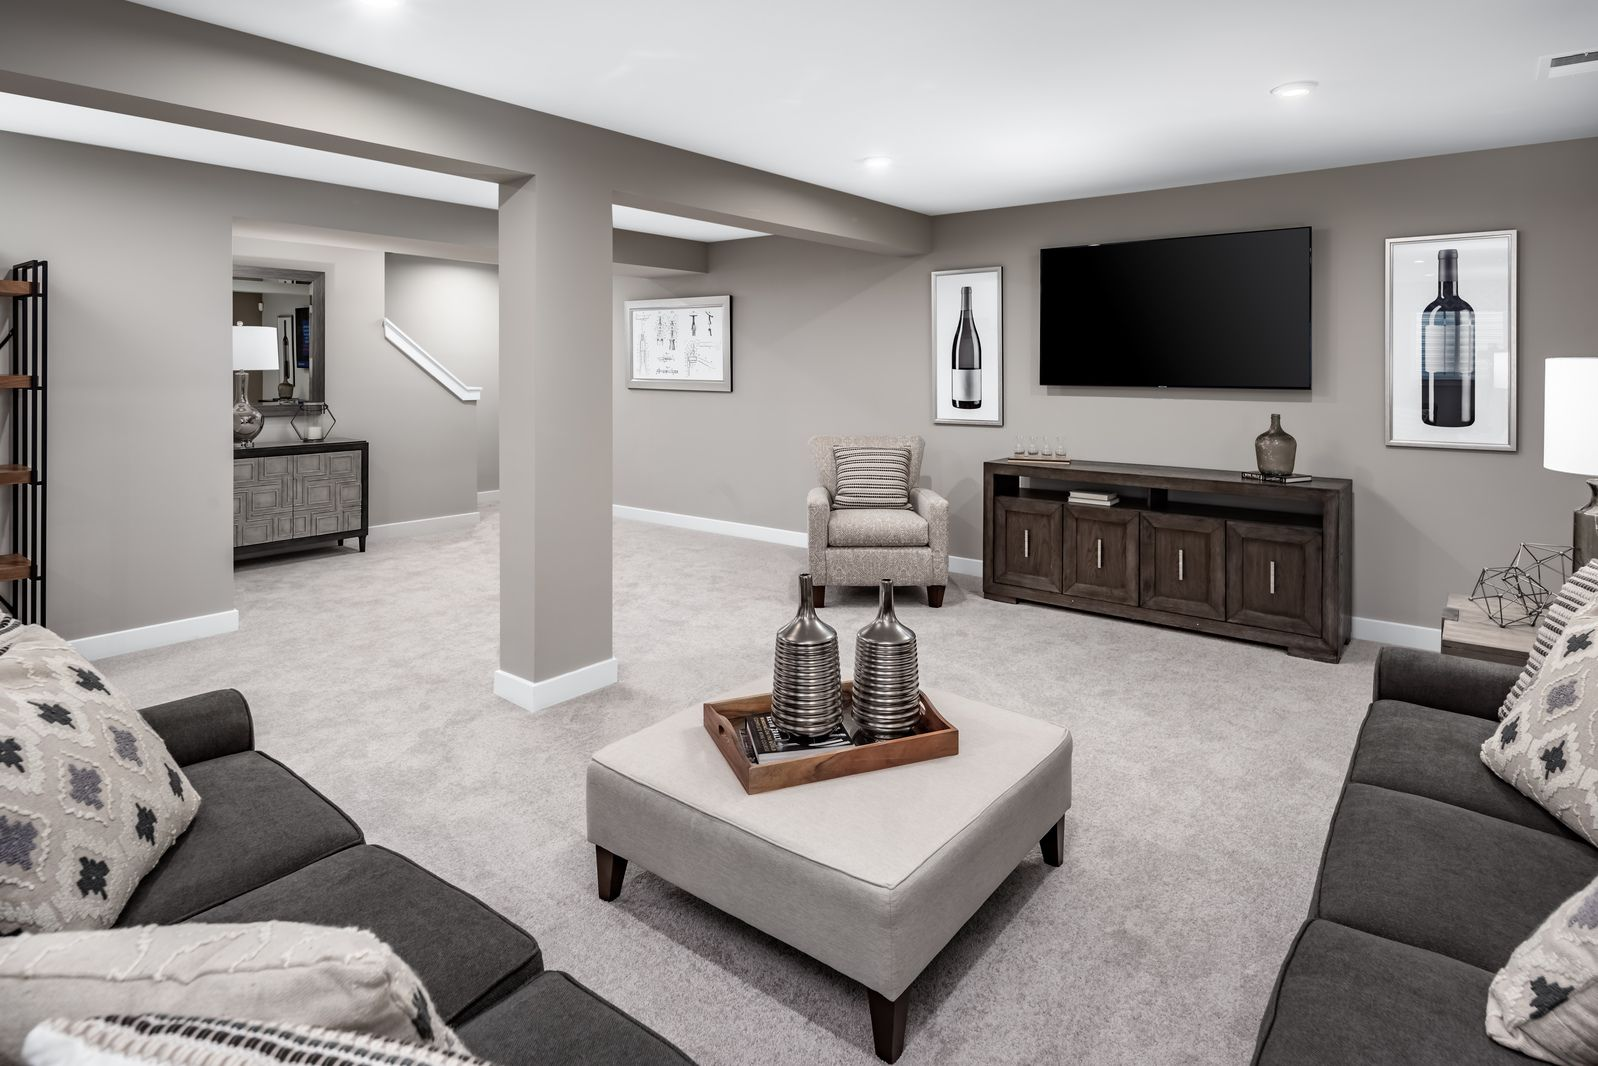 Living Area featured in the Alberti Ranch By Ryan Homes in Baltimore, MD